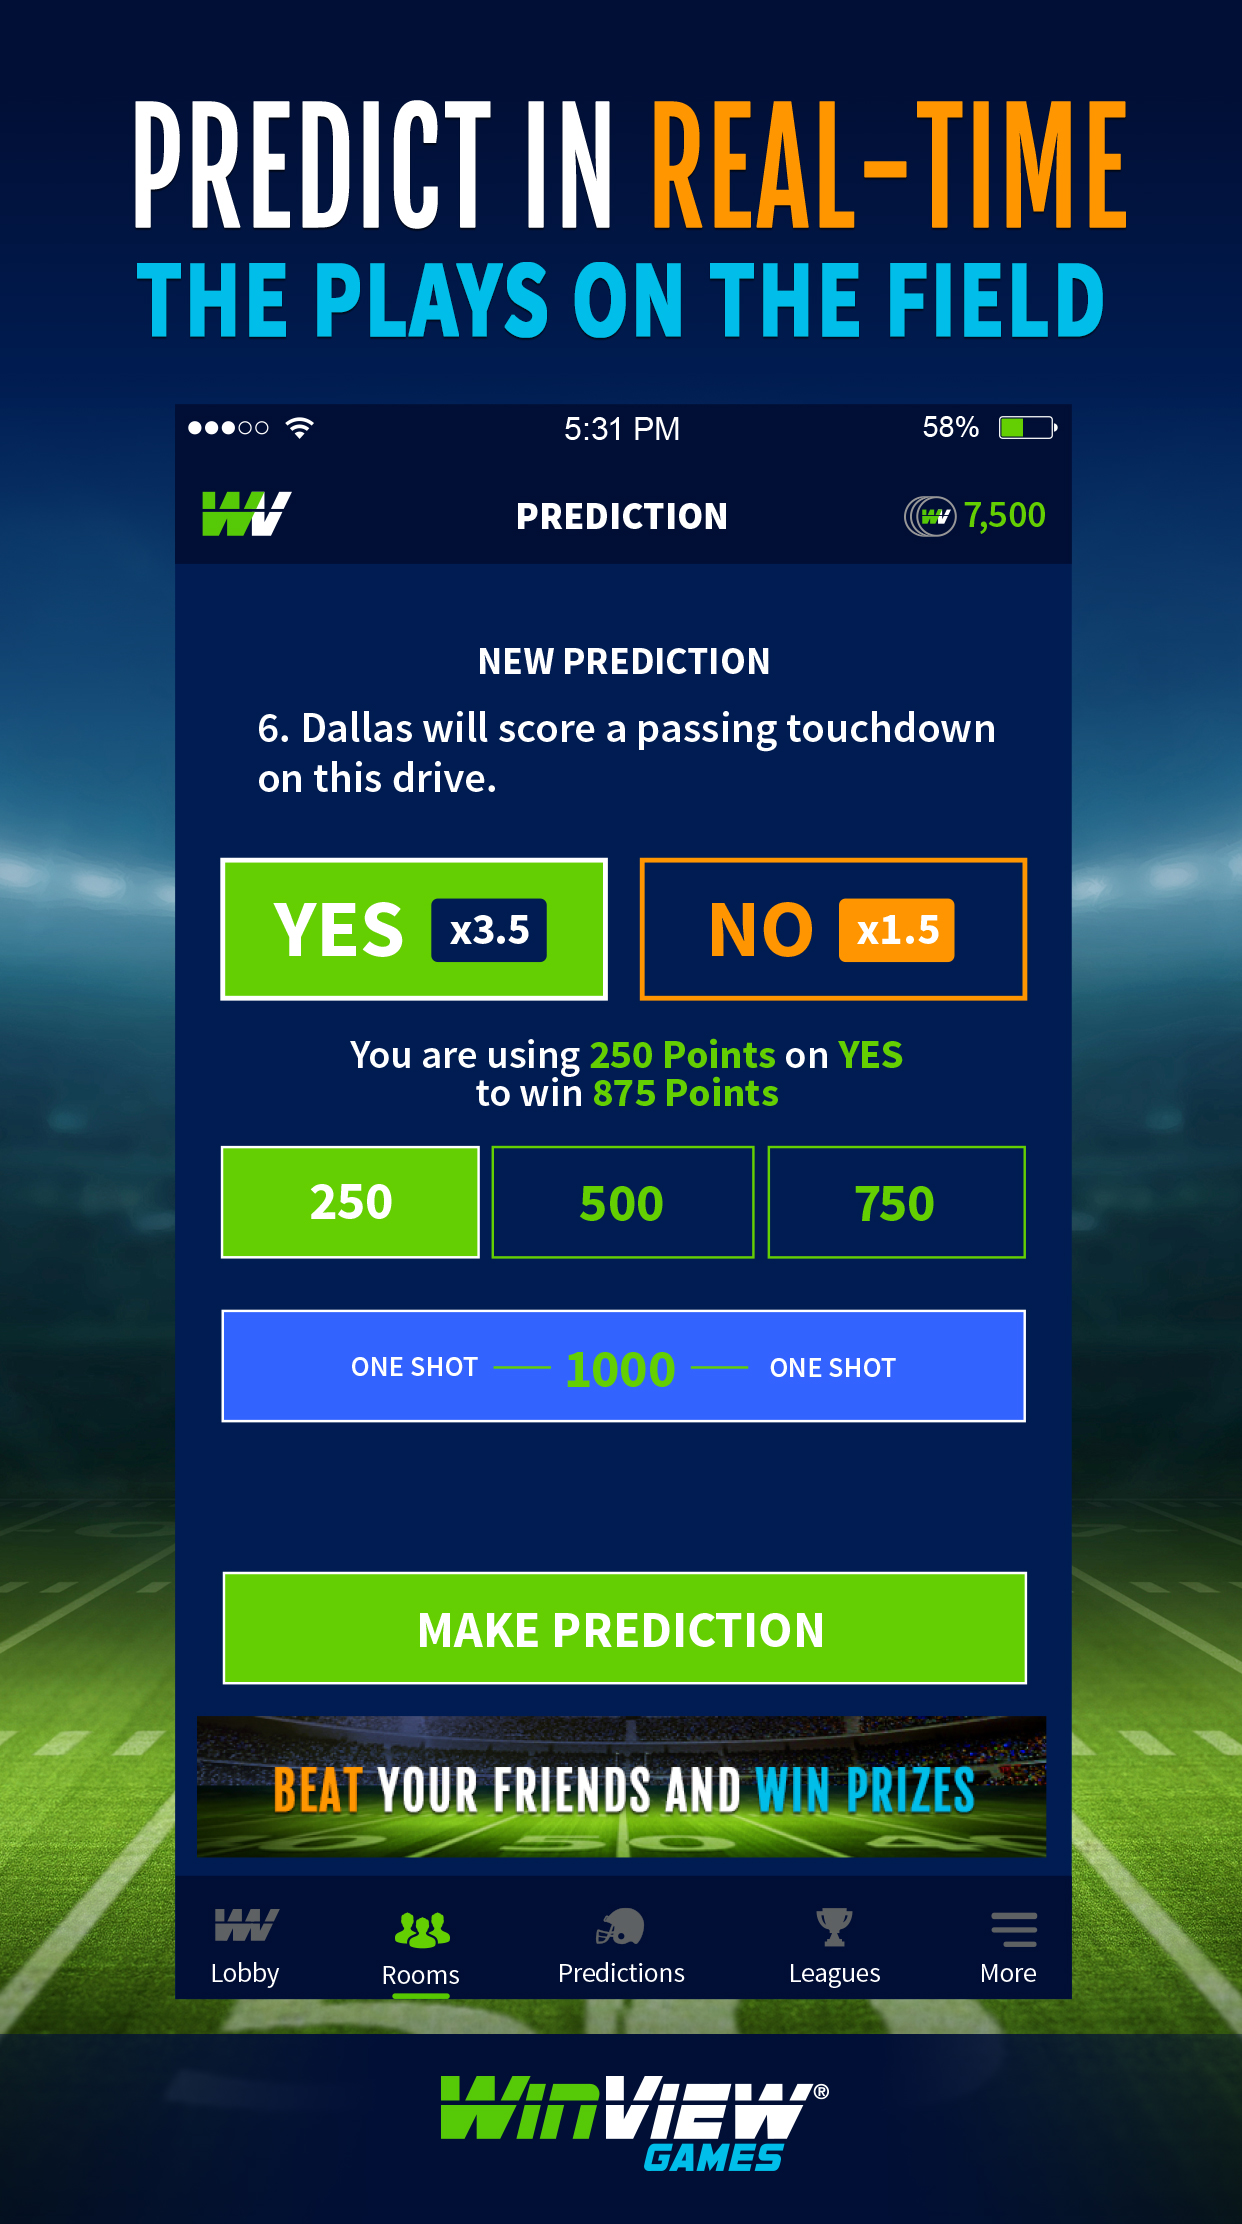 New Live Football Prediction App Puts the Action on the Field Into Fans' Hands